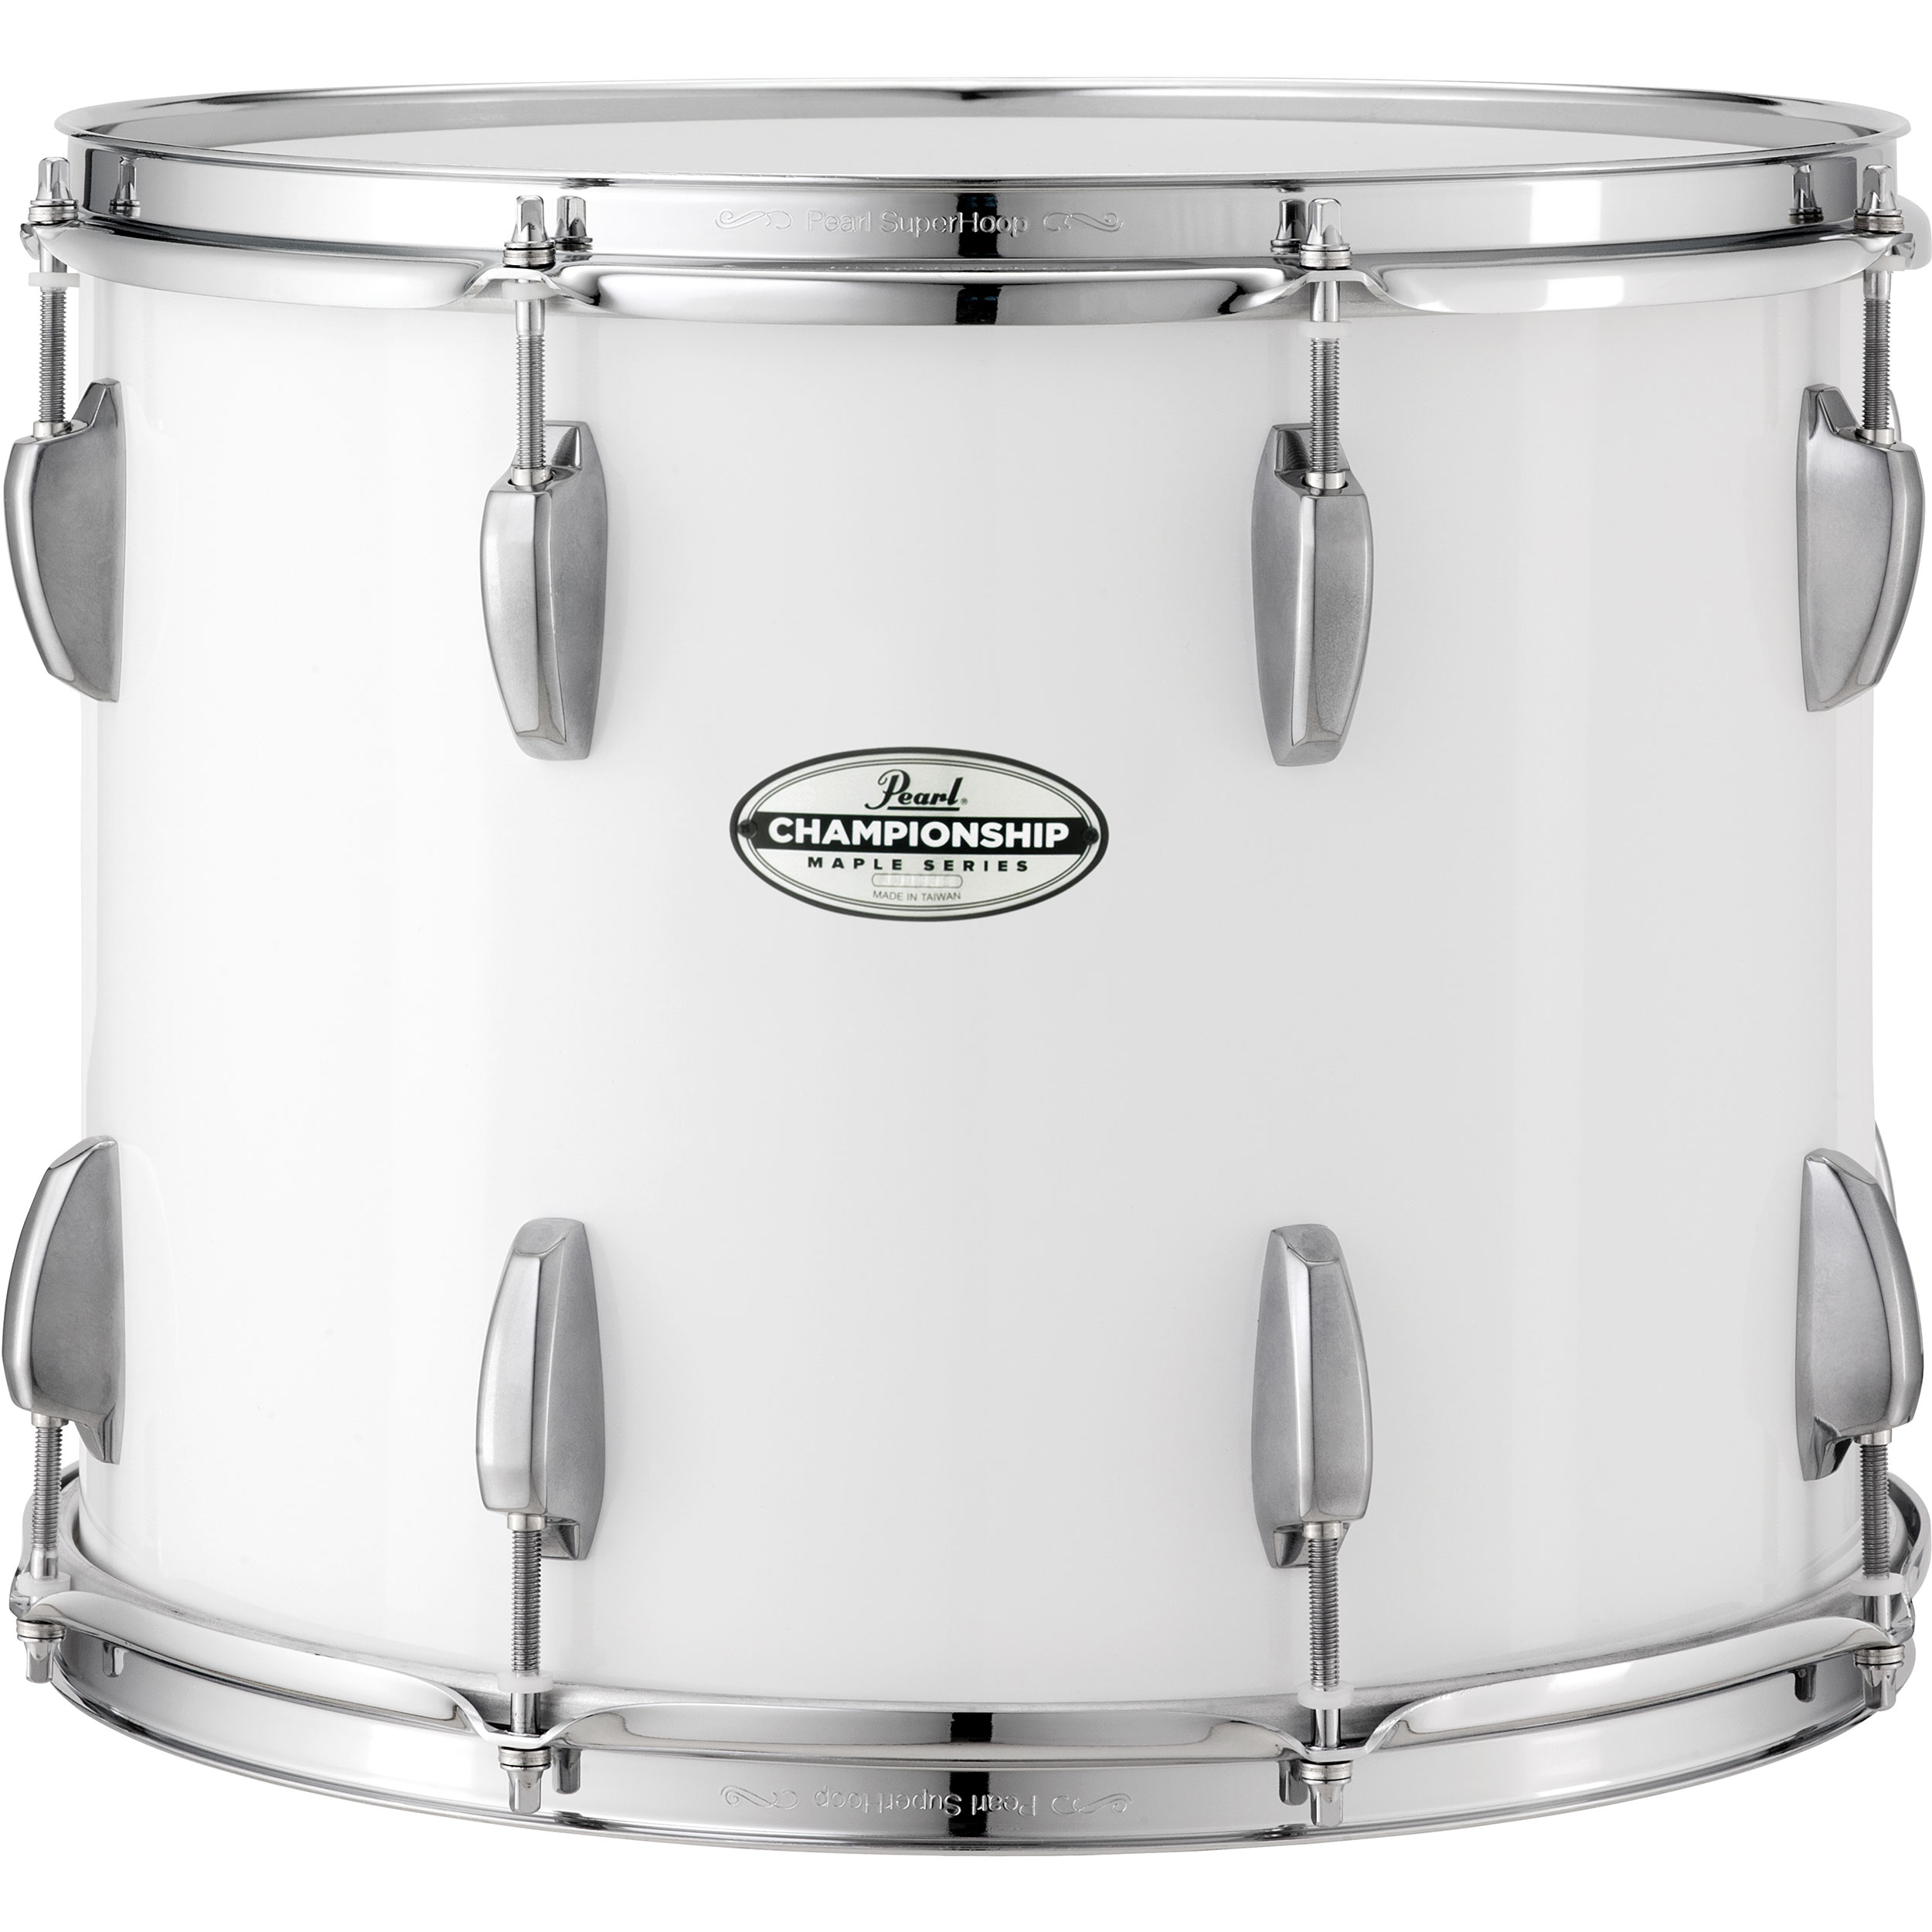 "Pearl 16"" x 14"" PTDM Championship Maple Traditional Marching Tenor Drum with Aluminum Hardware"